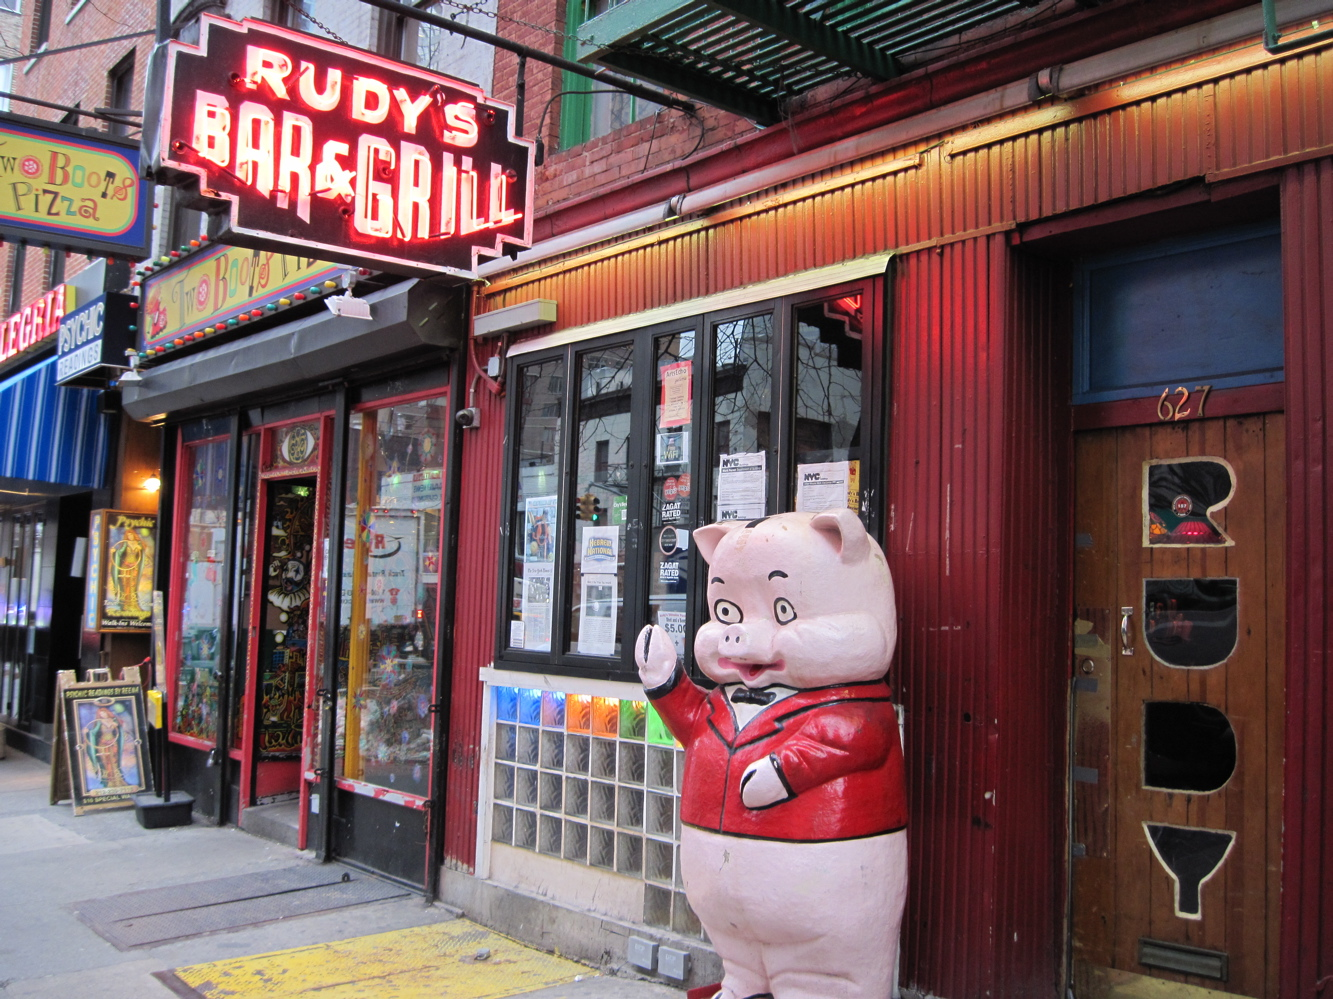 Rudys bar in New York City